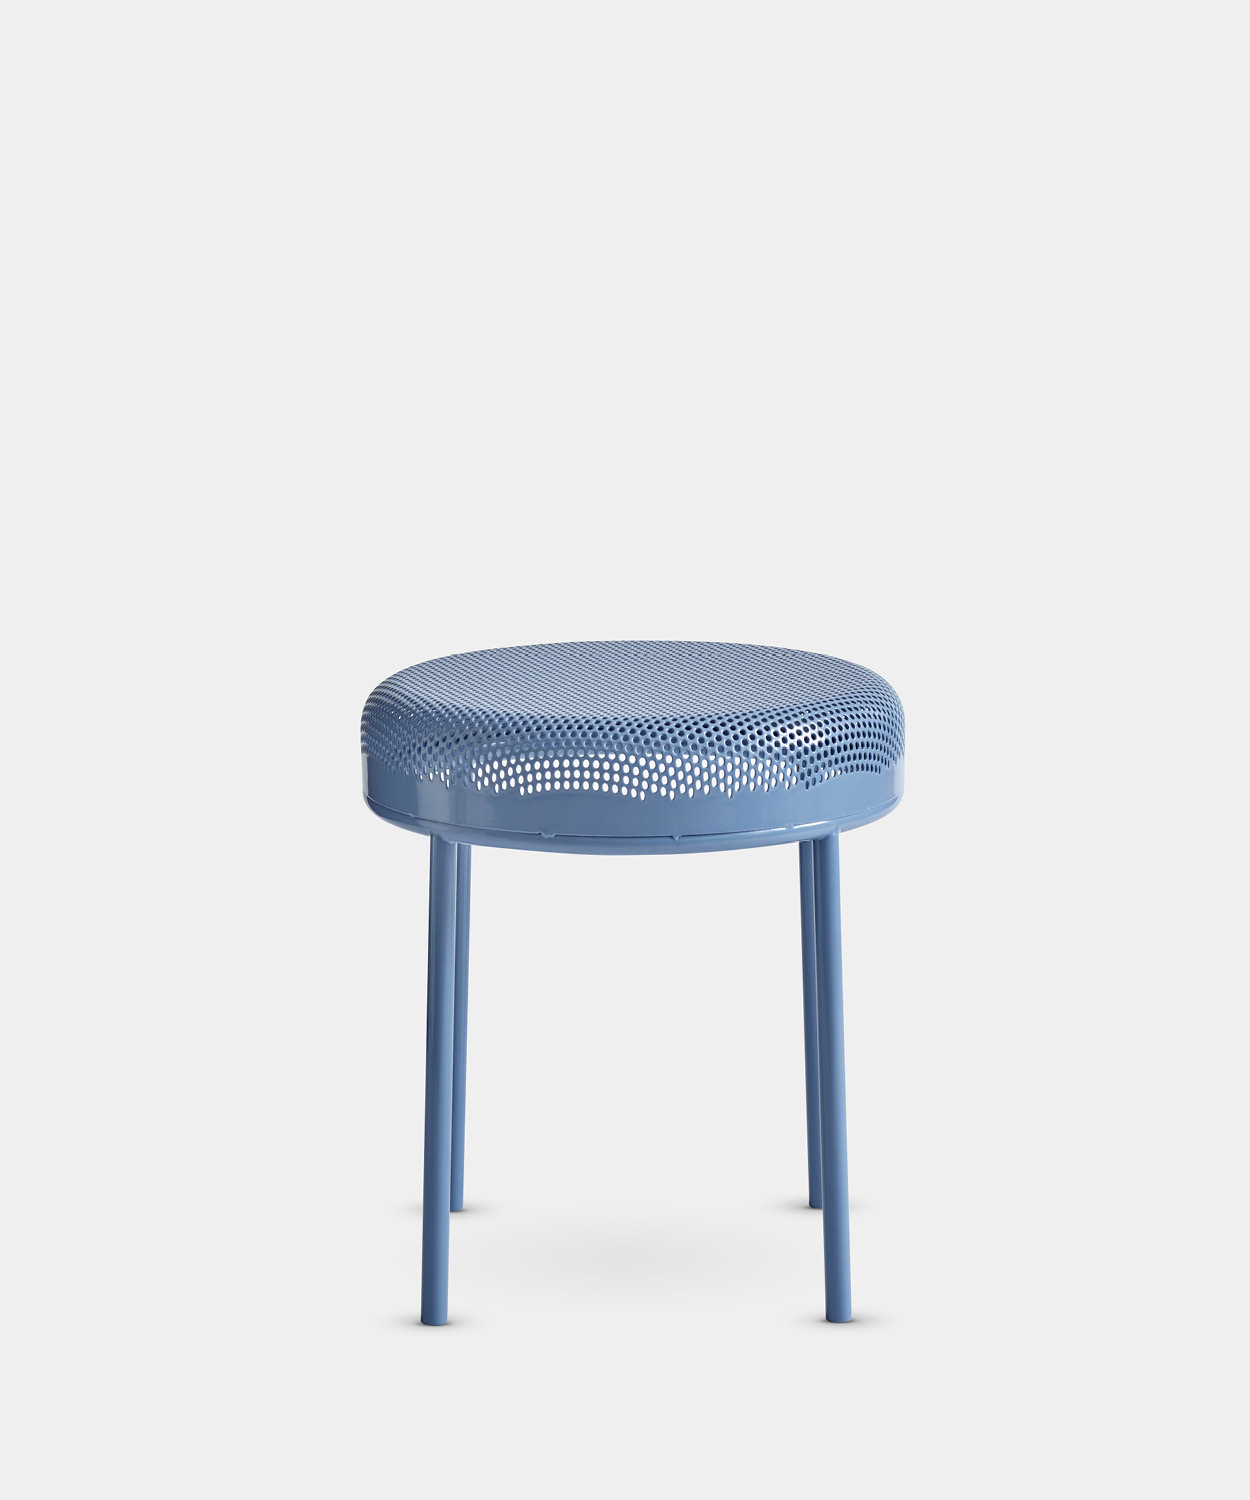 Lervik_Dimma Stool01_web